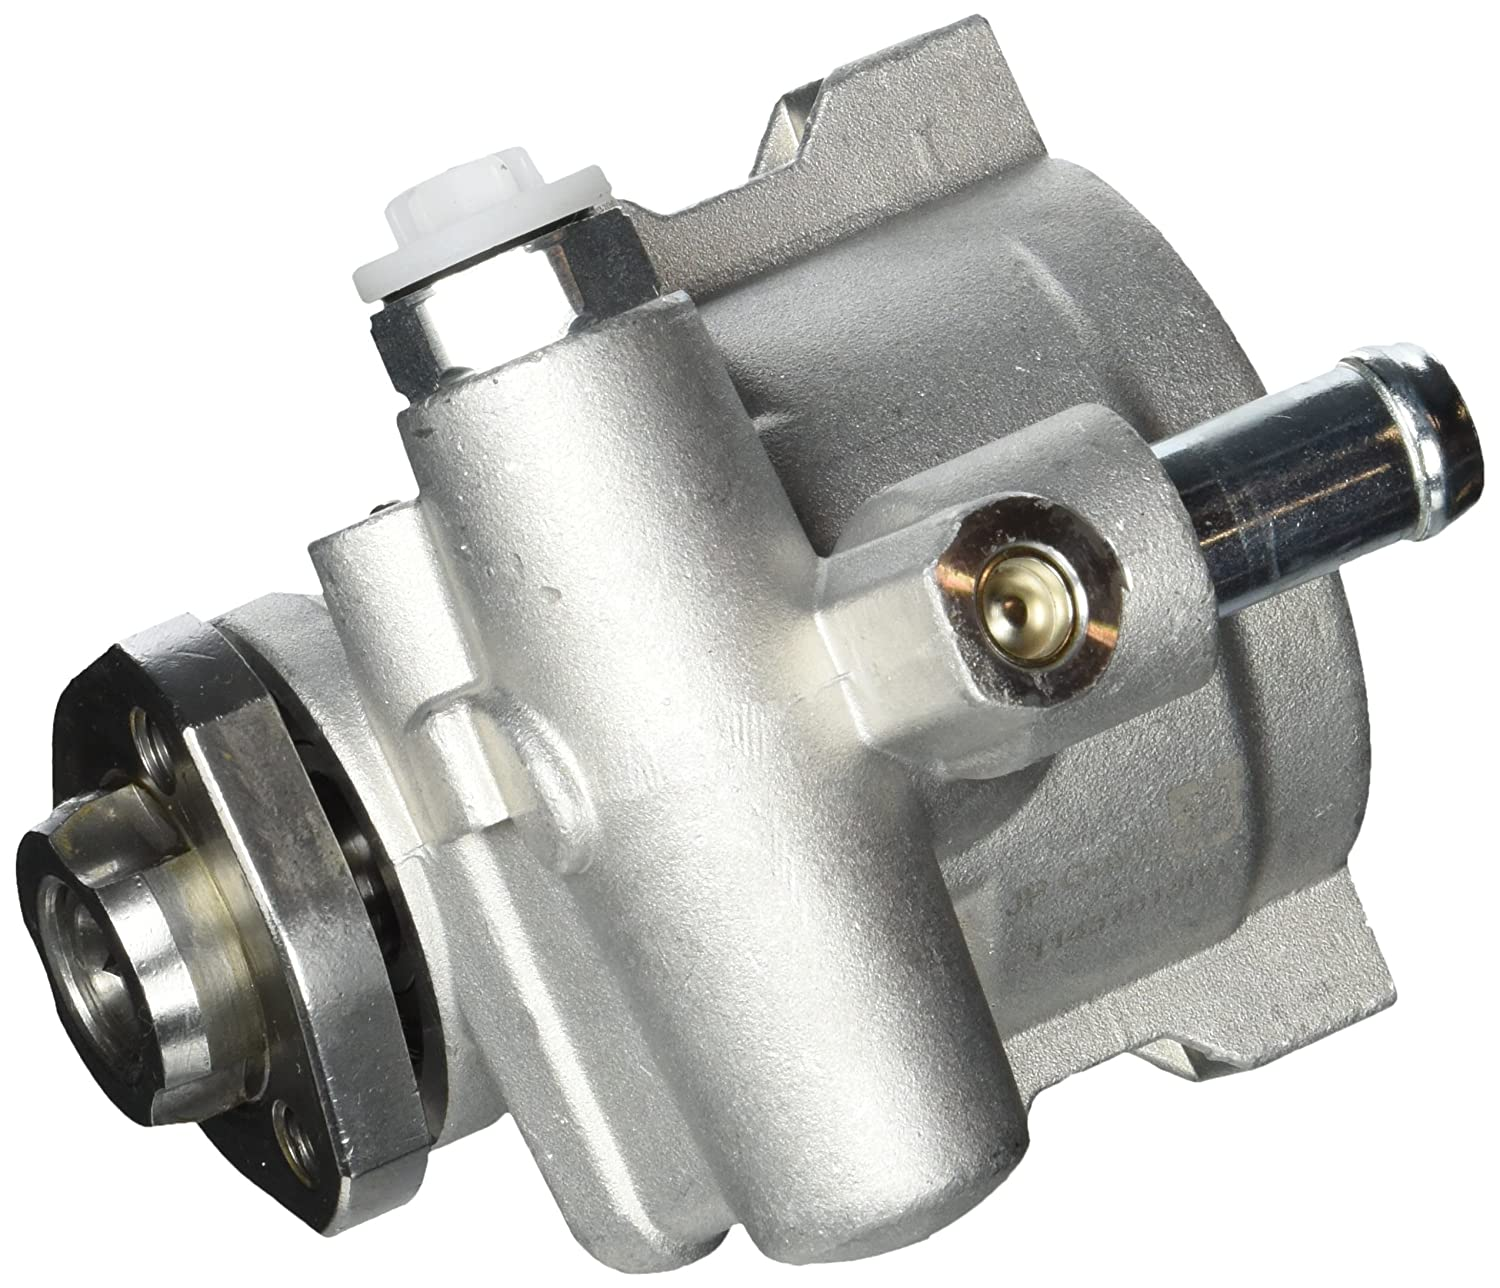 OSSCA 06247/ Power Steering Pump